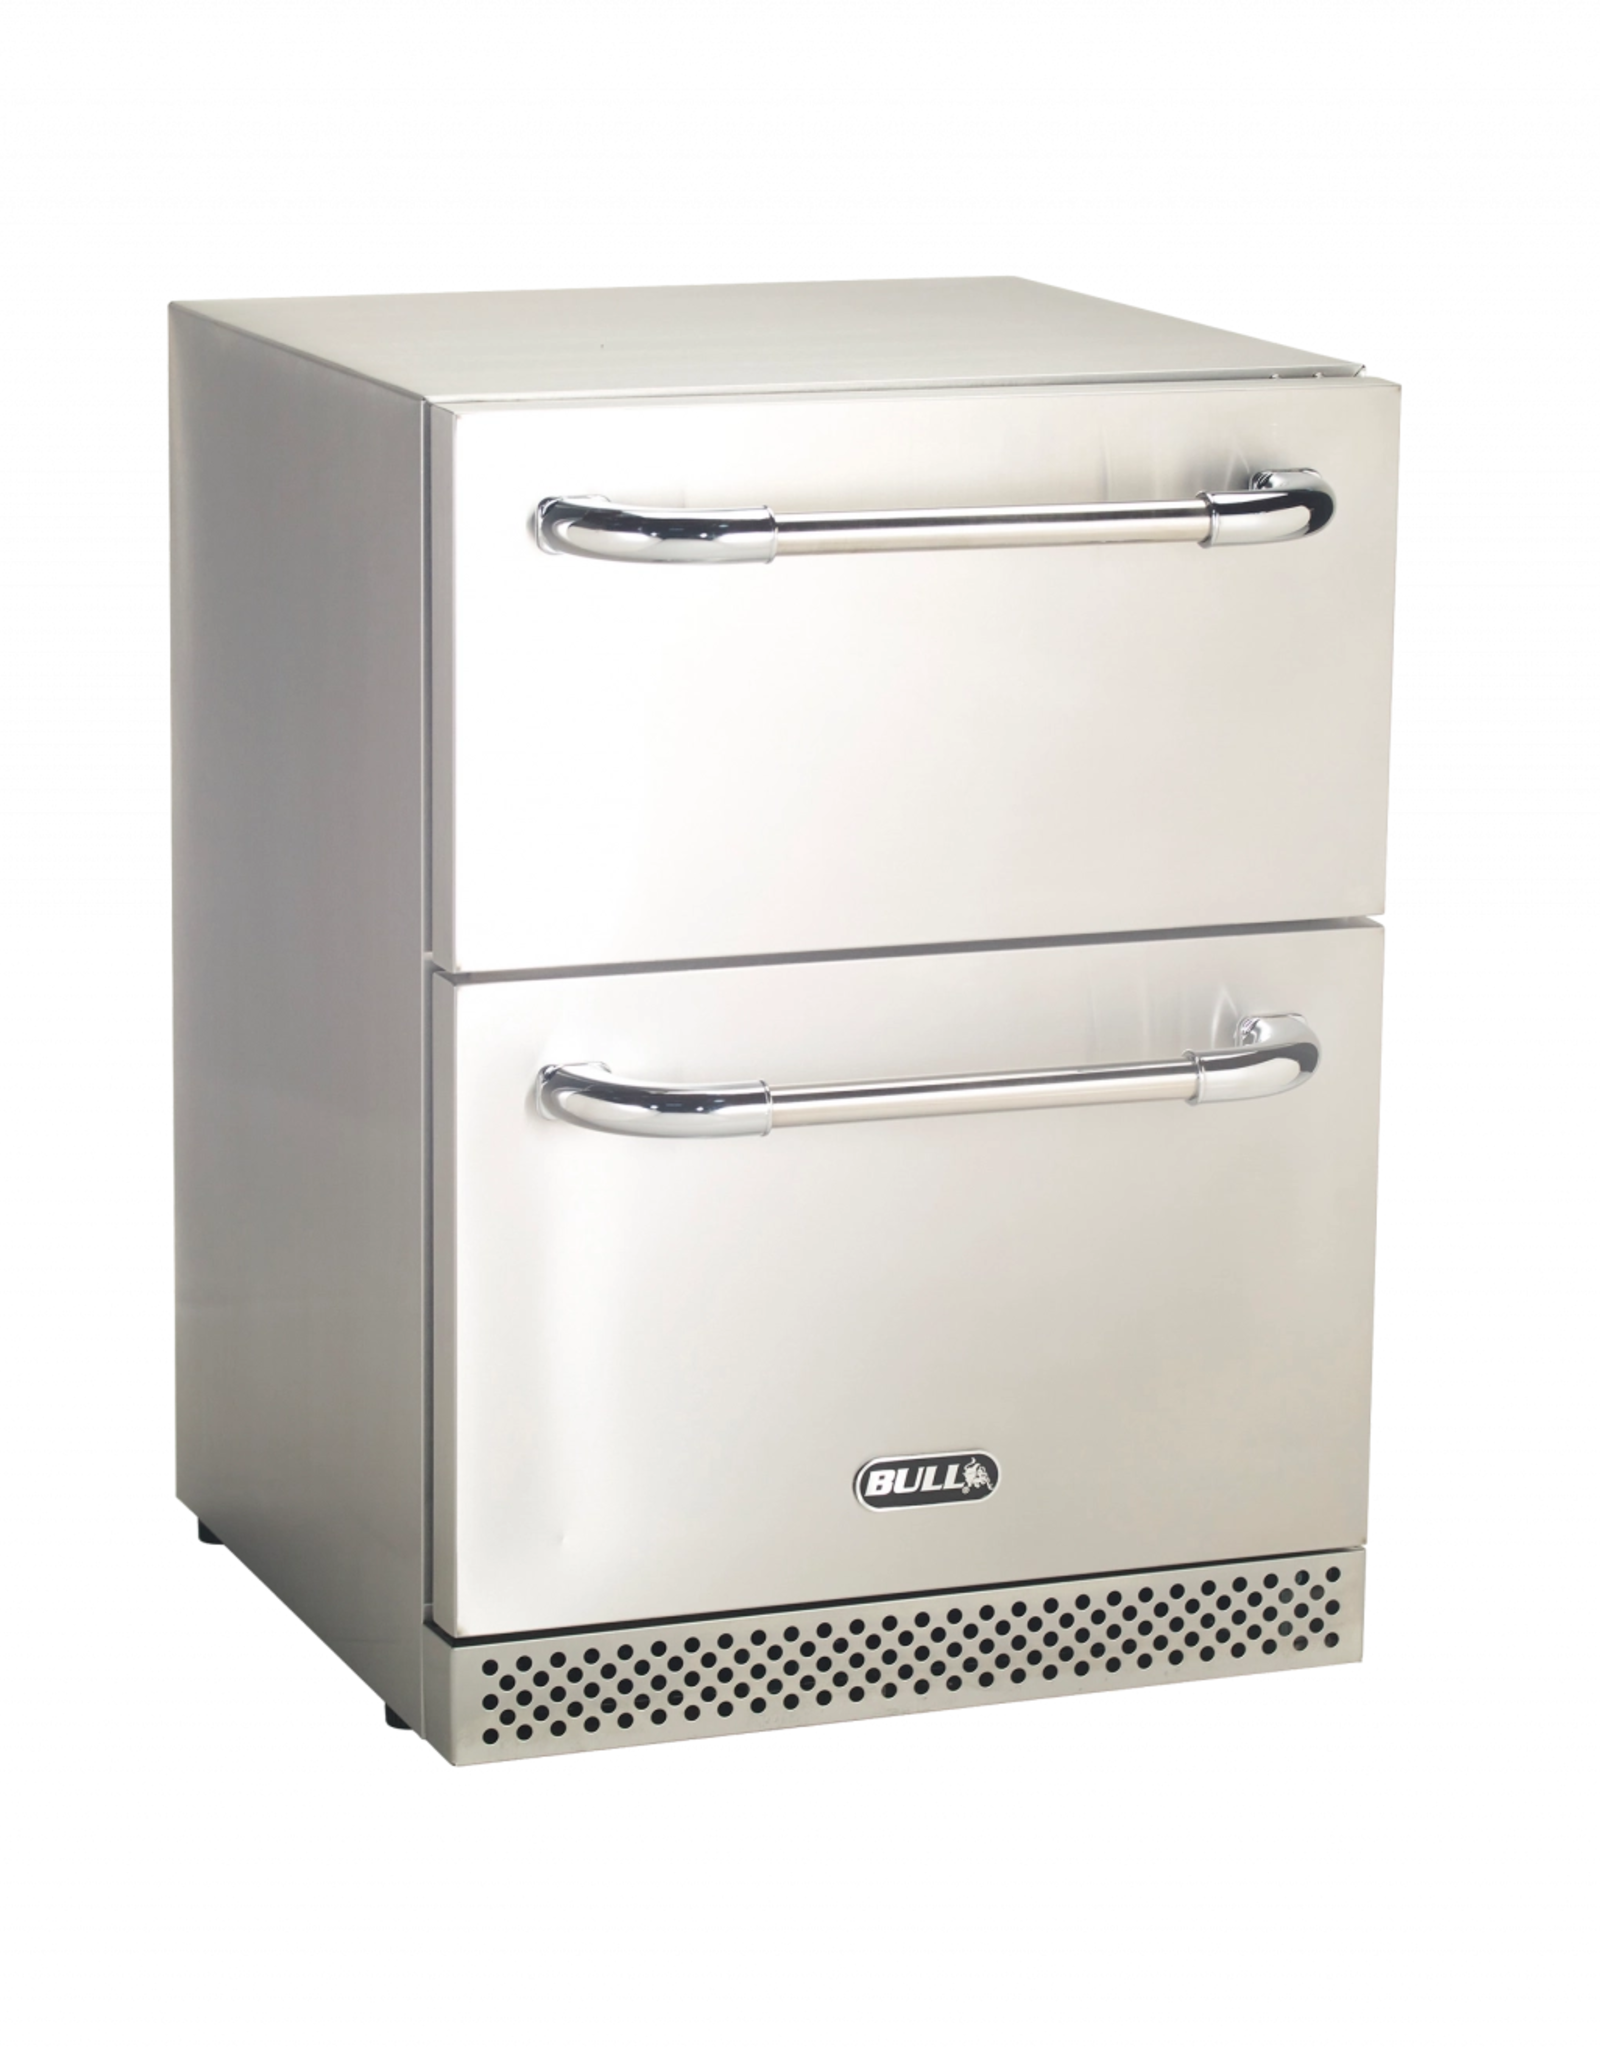 Bull Bull Premium Double Drawer Outdoor Rated Refrigerator 5.0 cu. ft. - 17400